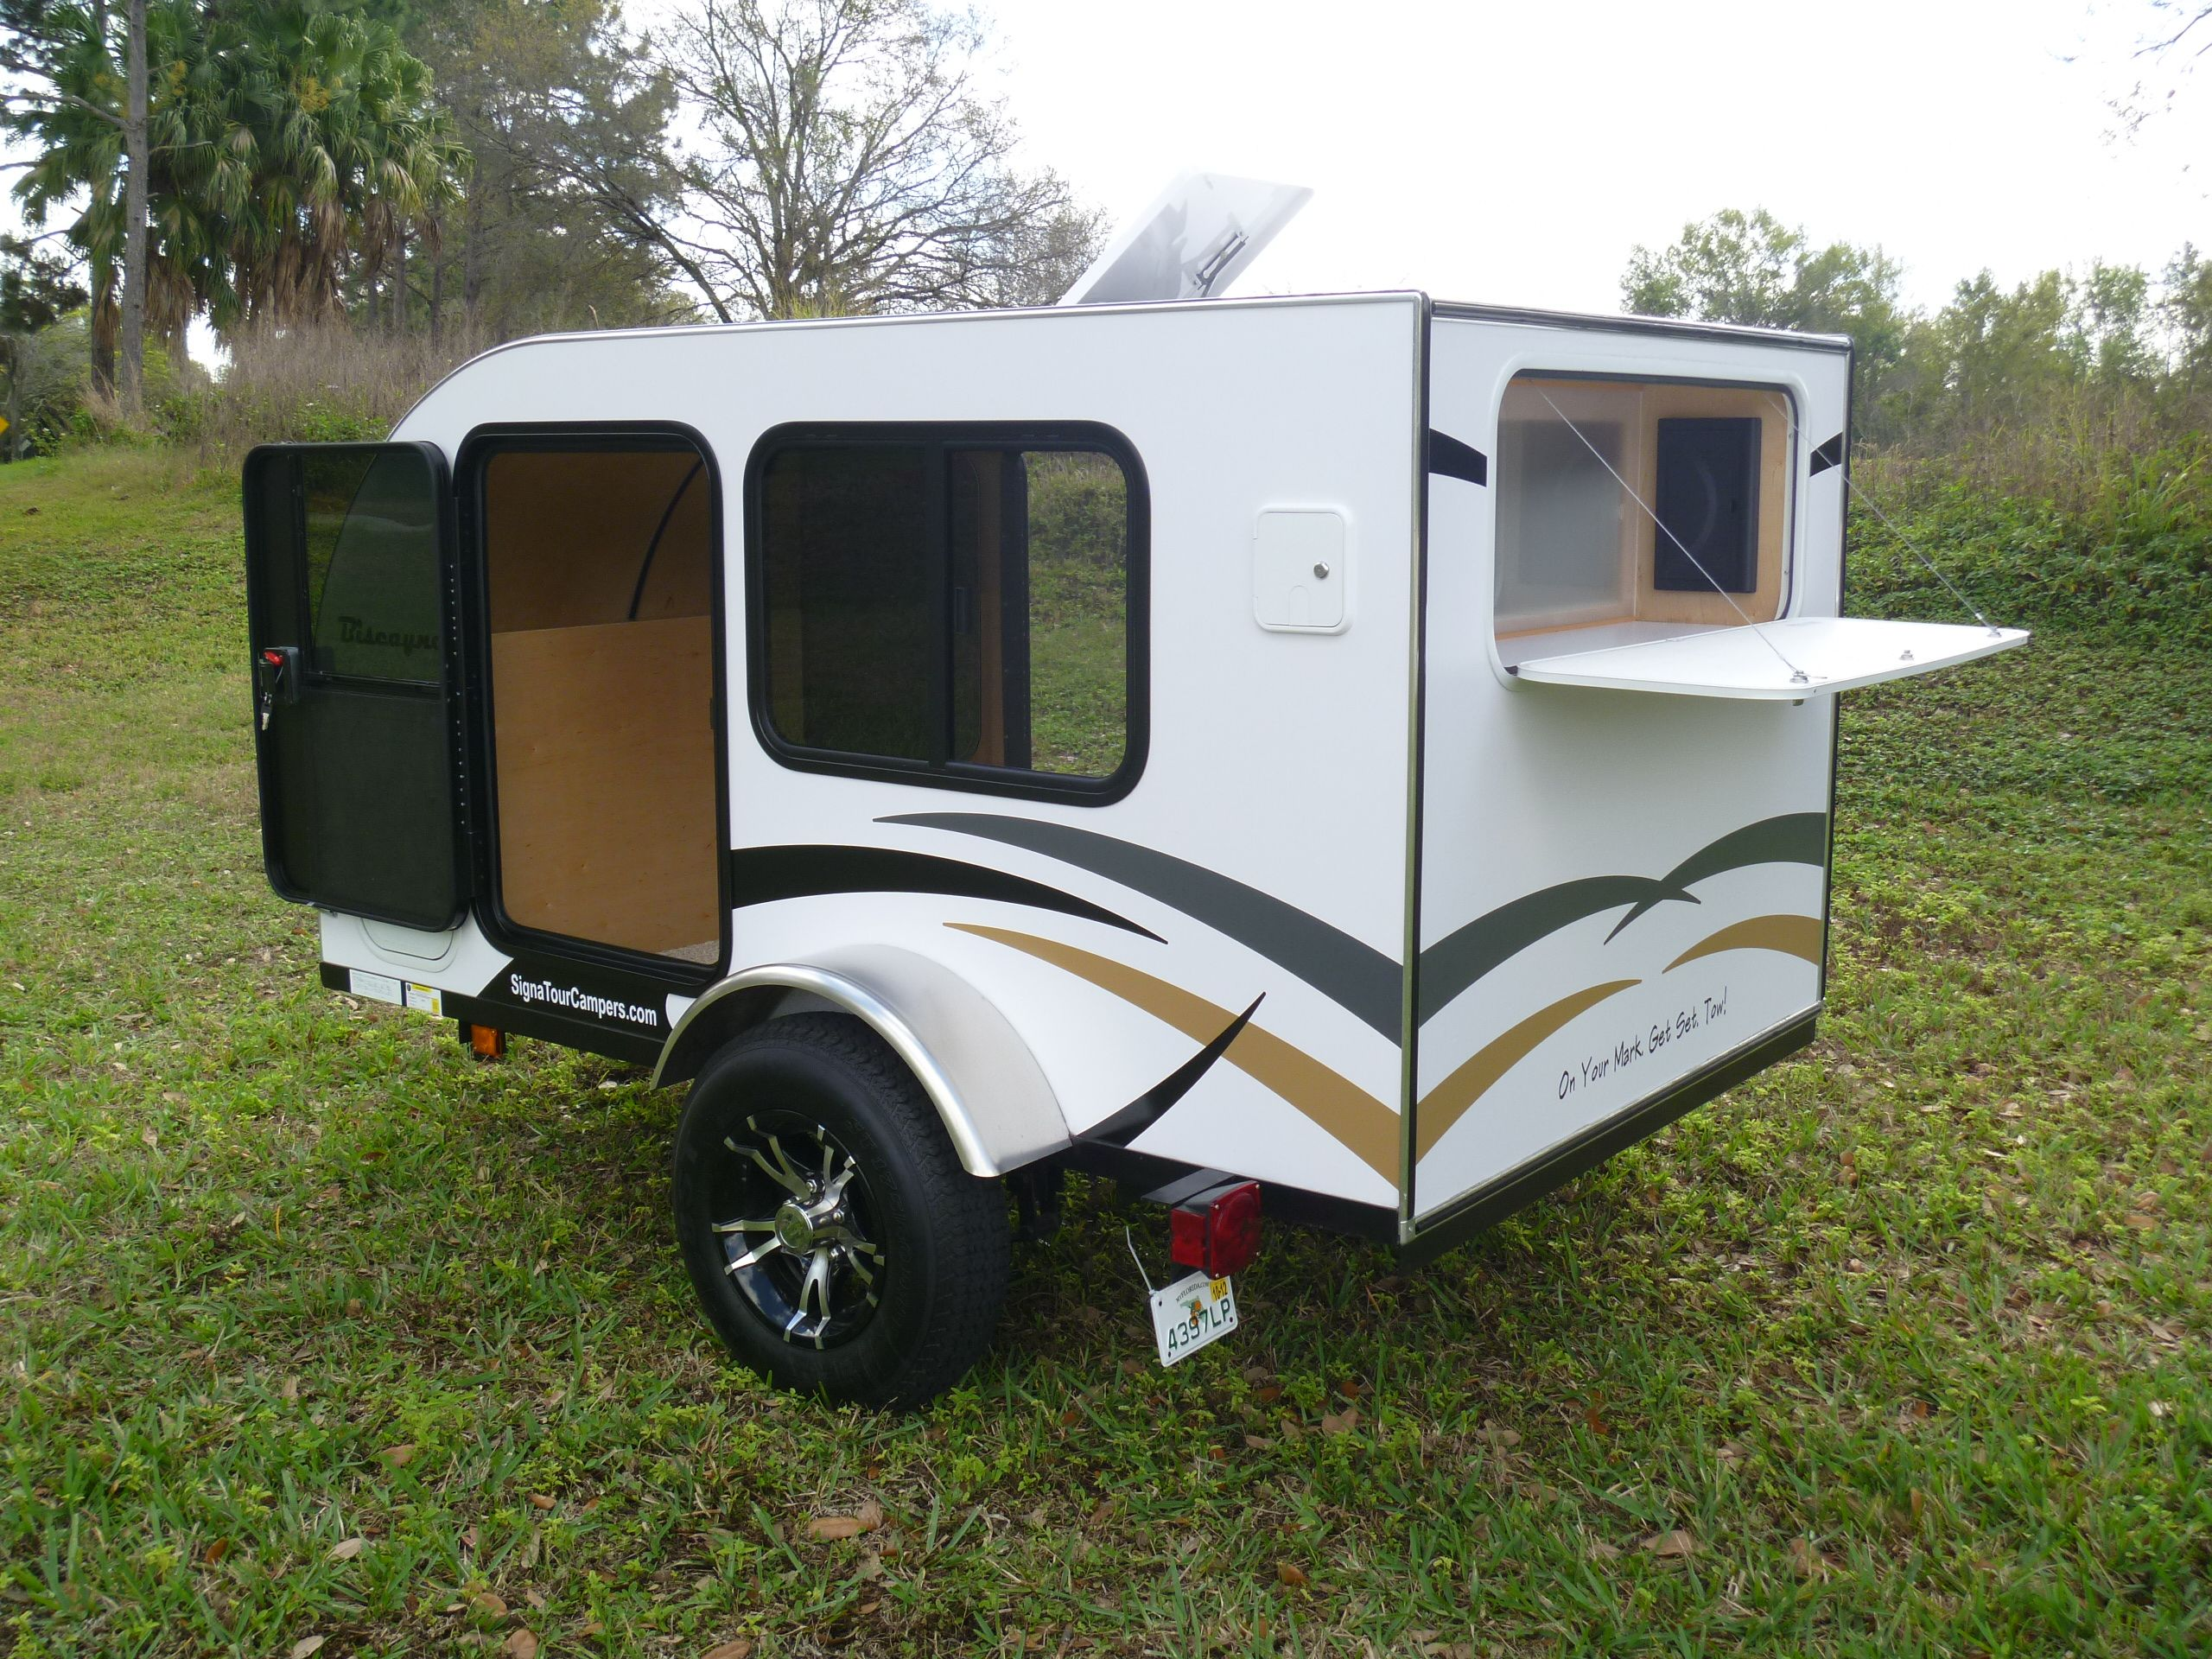 Teardrop camper with rear access door signatourcampers